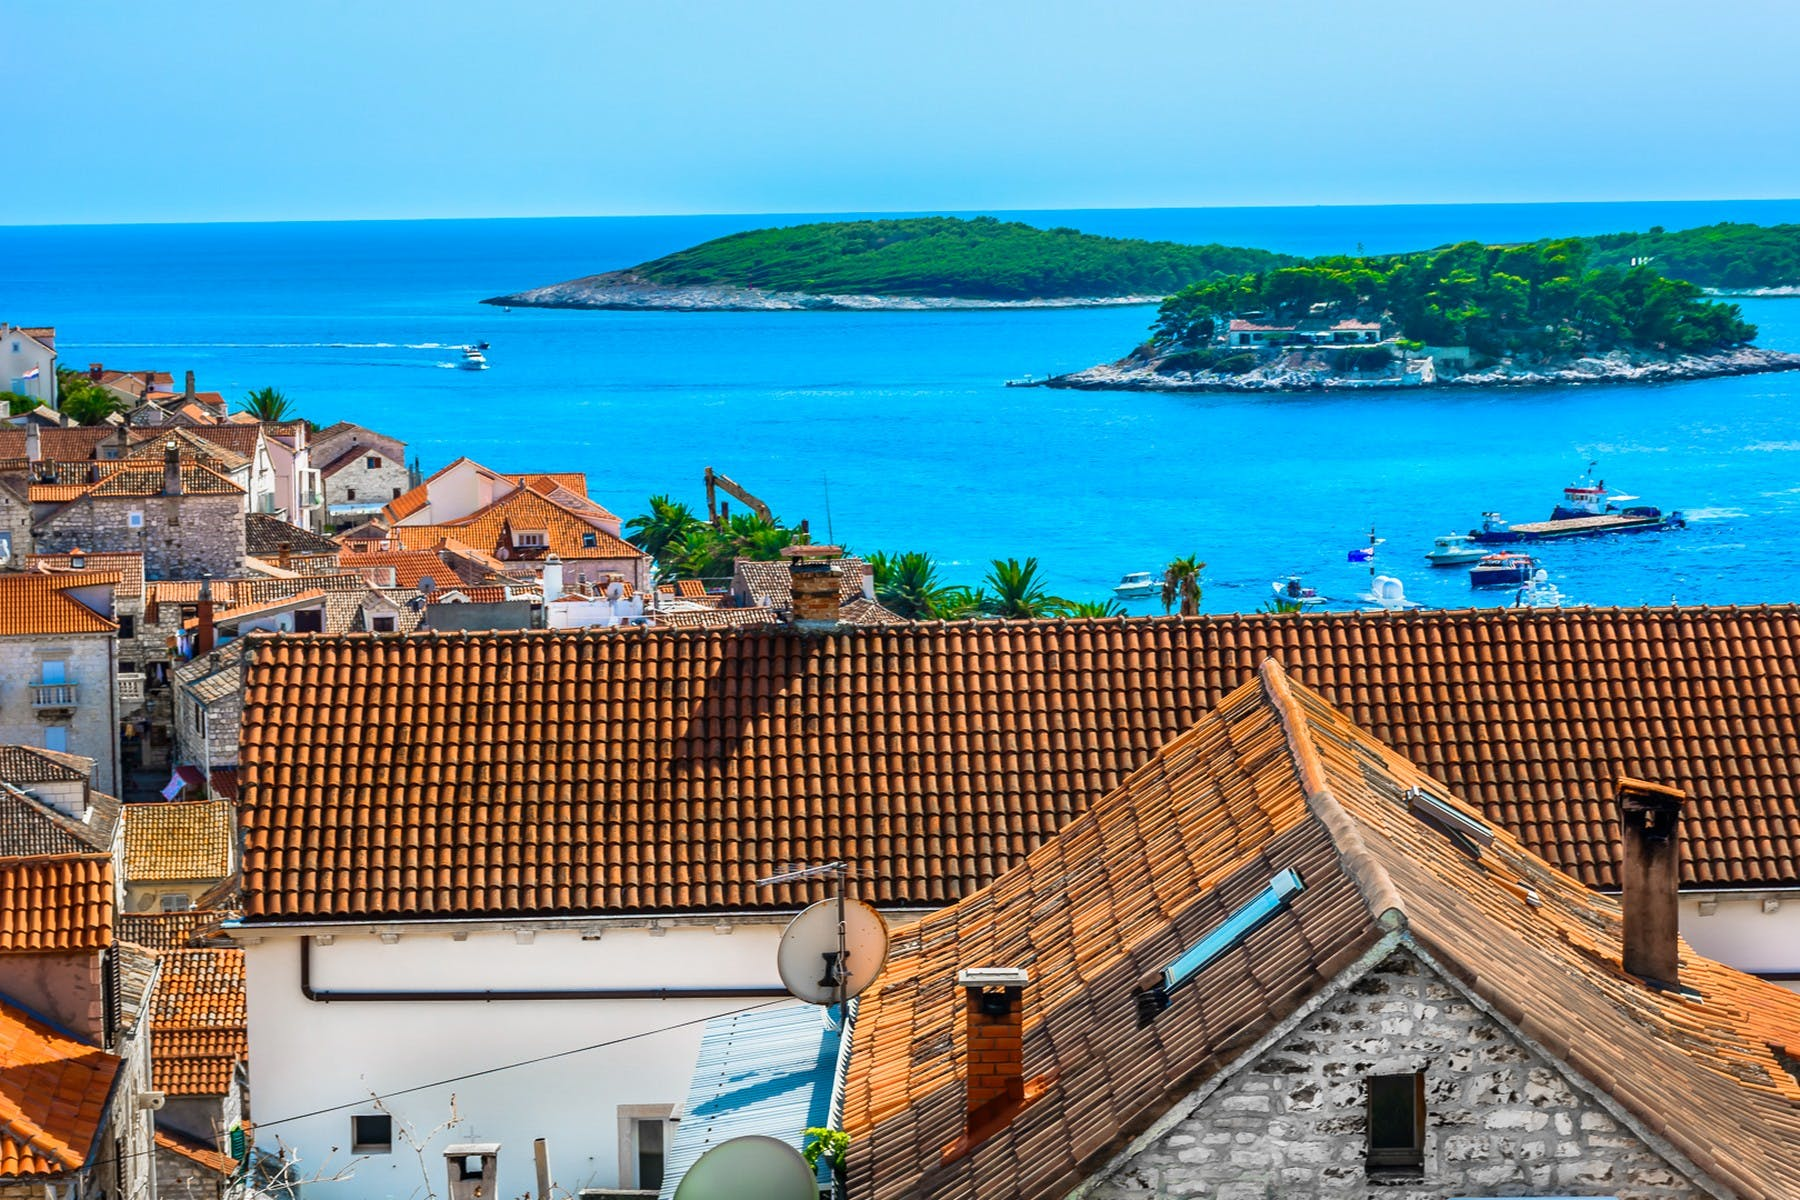 View of the Hvar old town and the sea